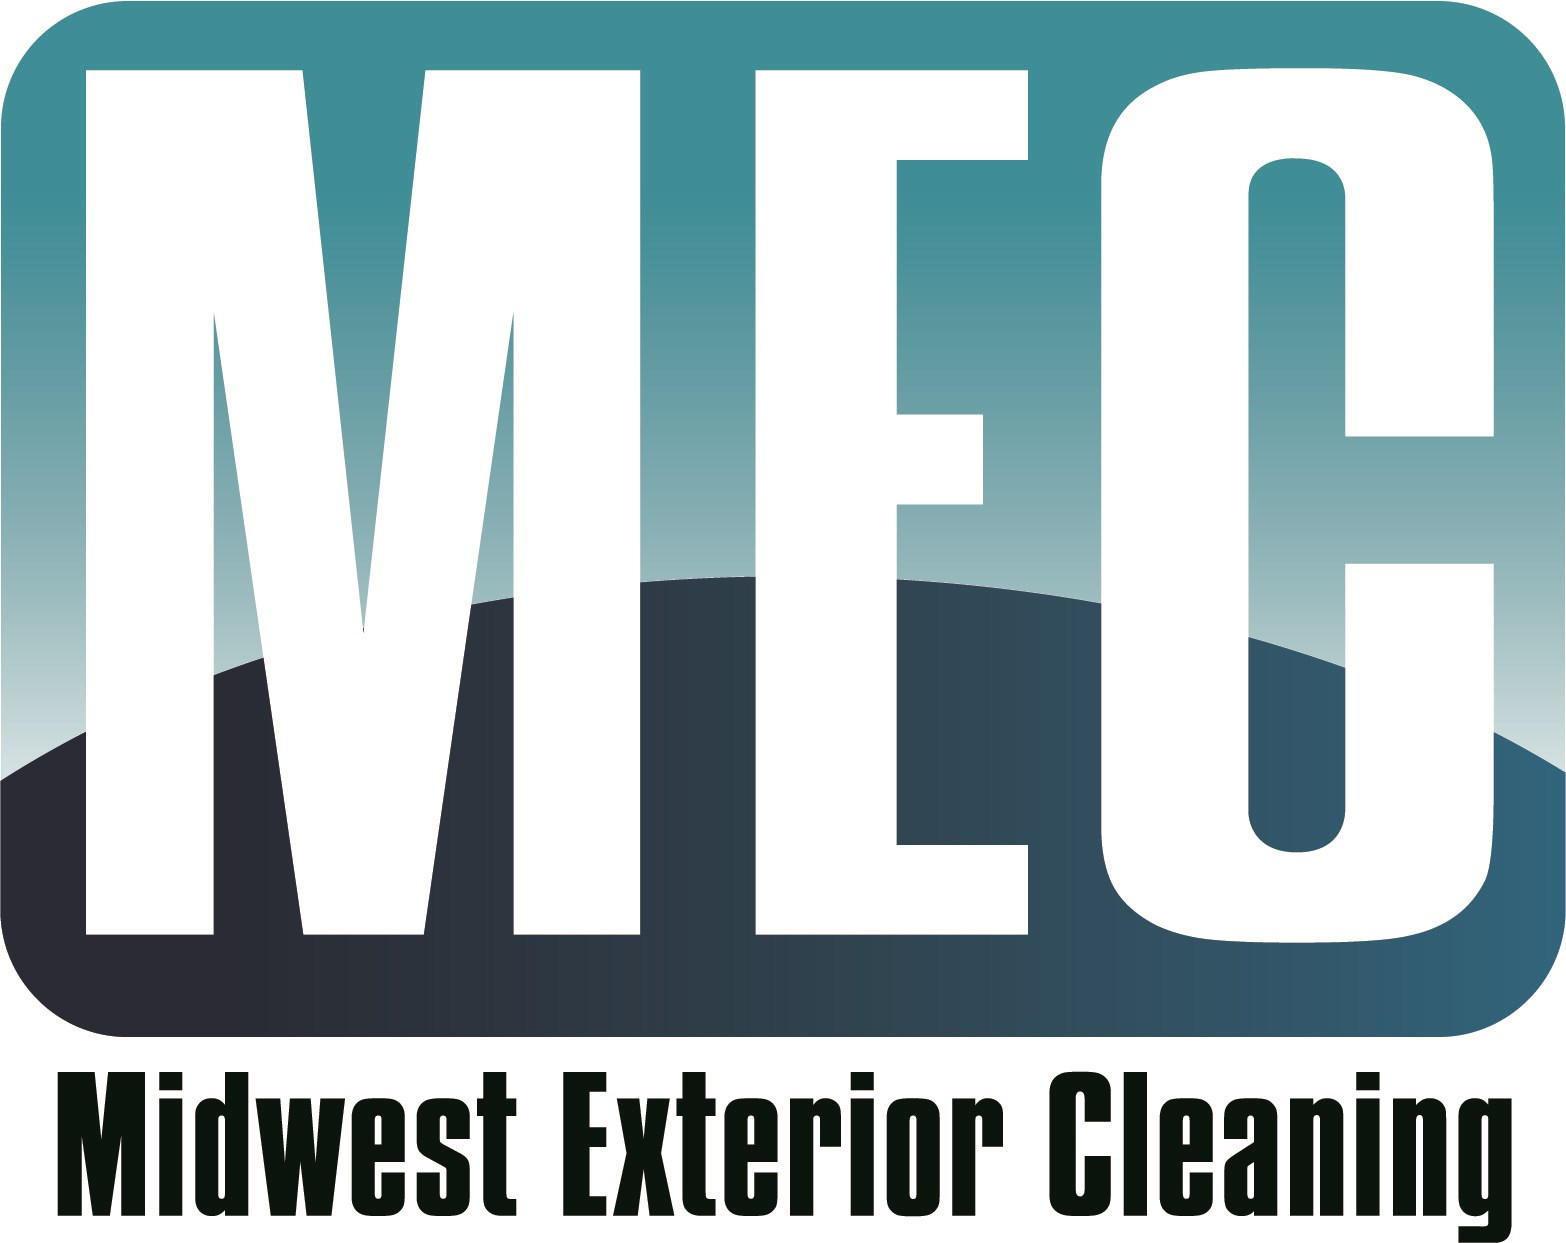 Midwest Exterior Cleaning logo